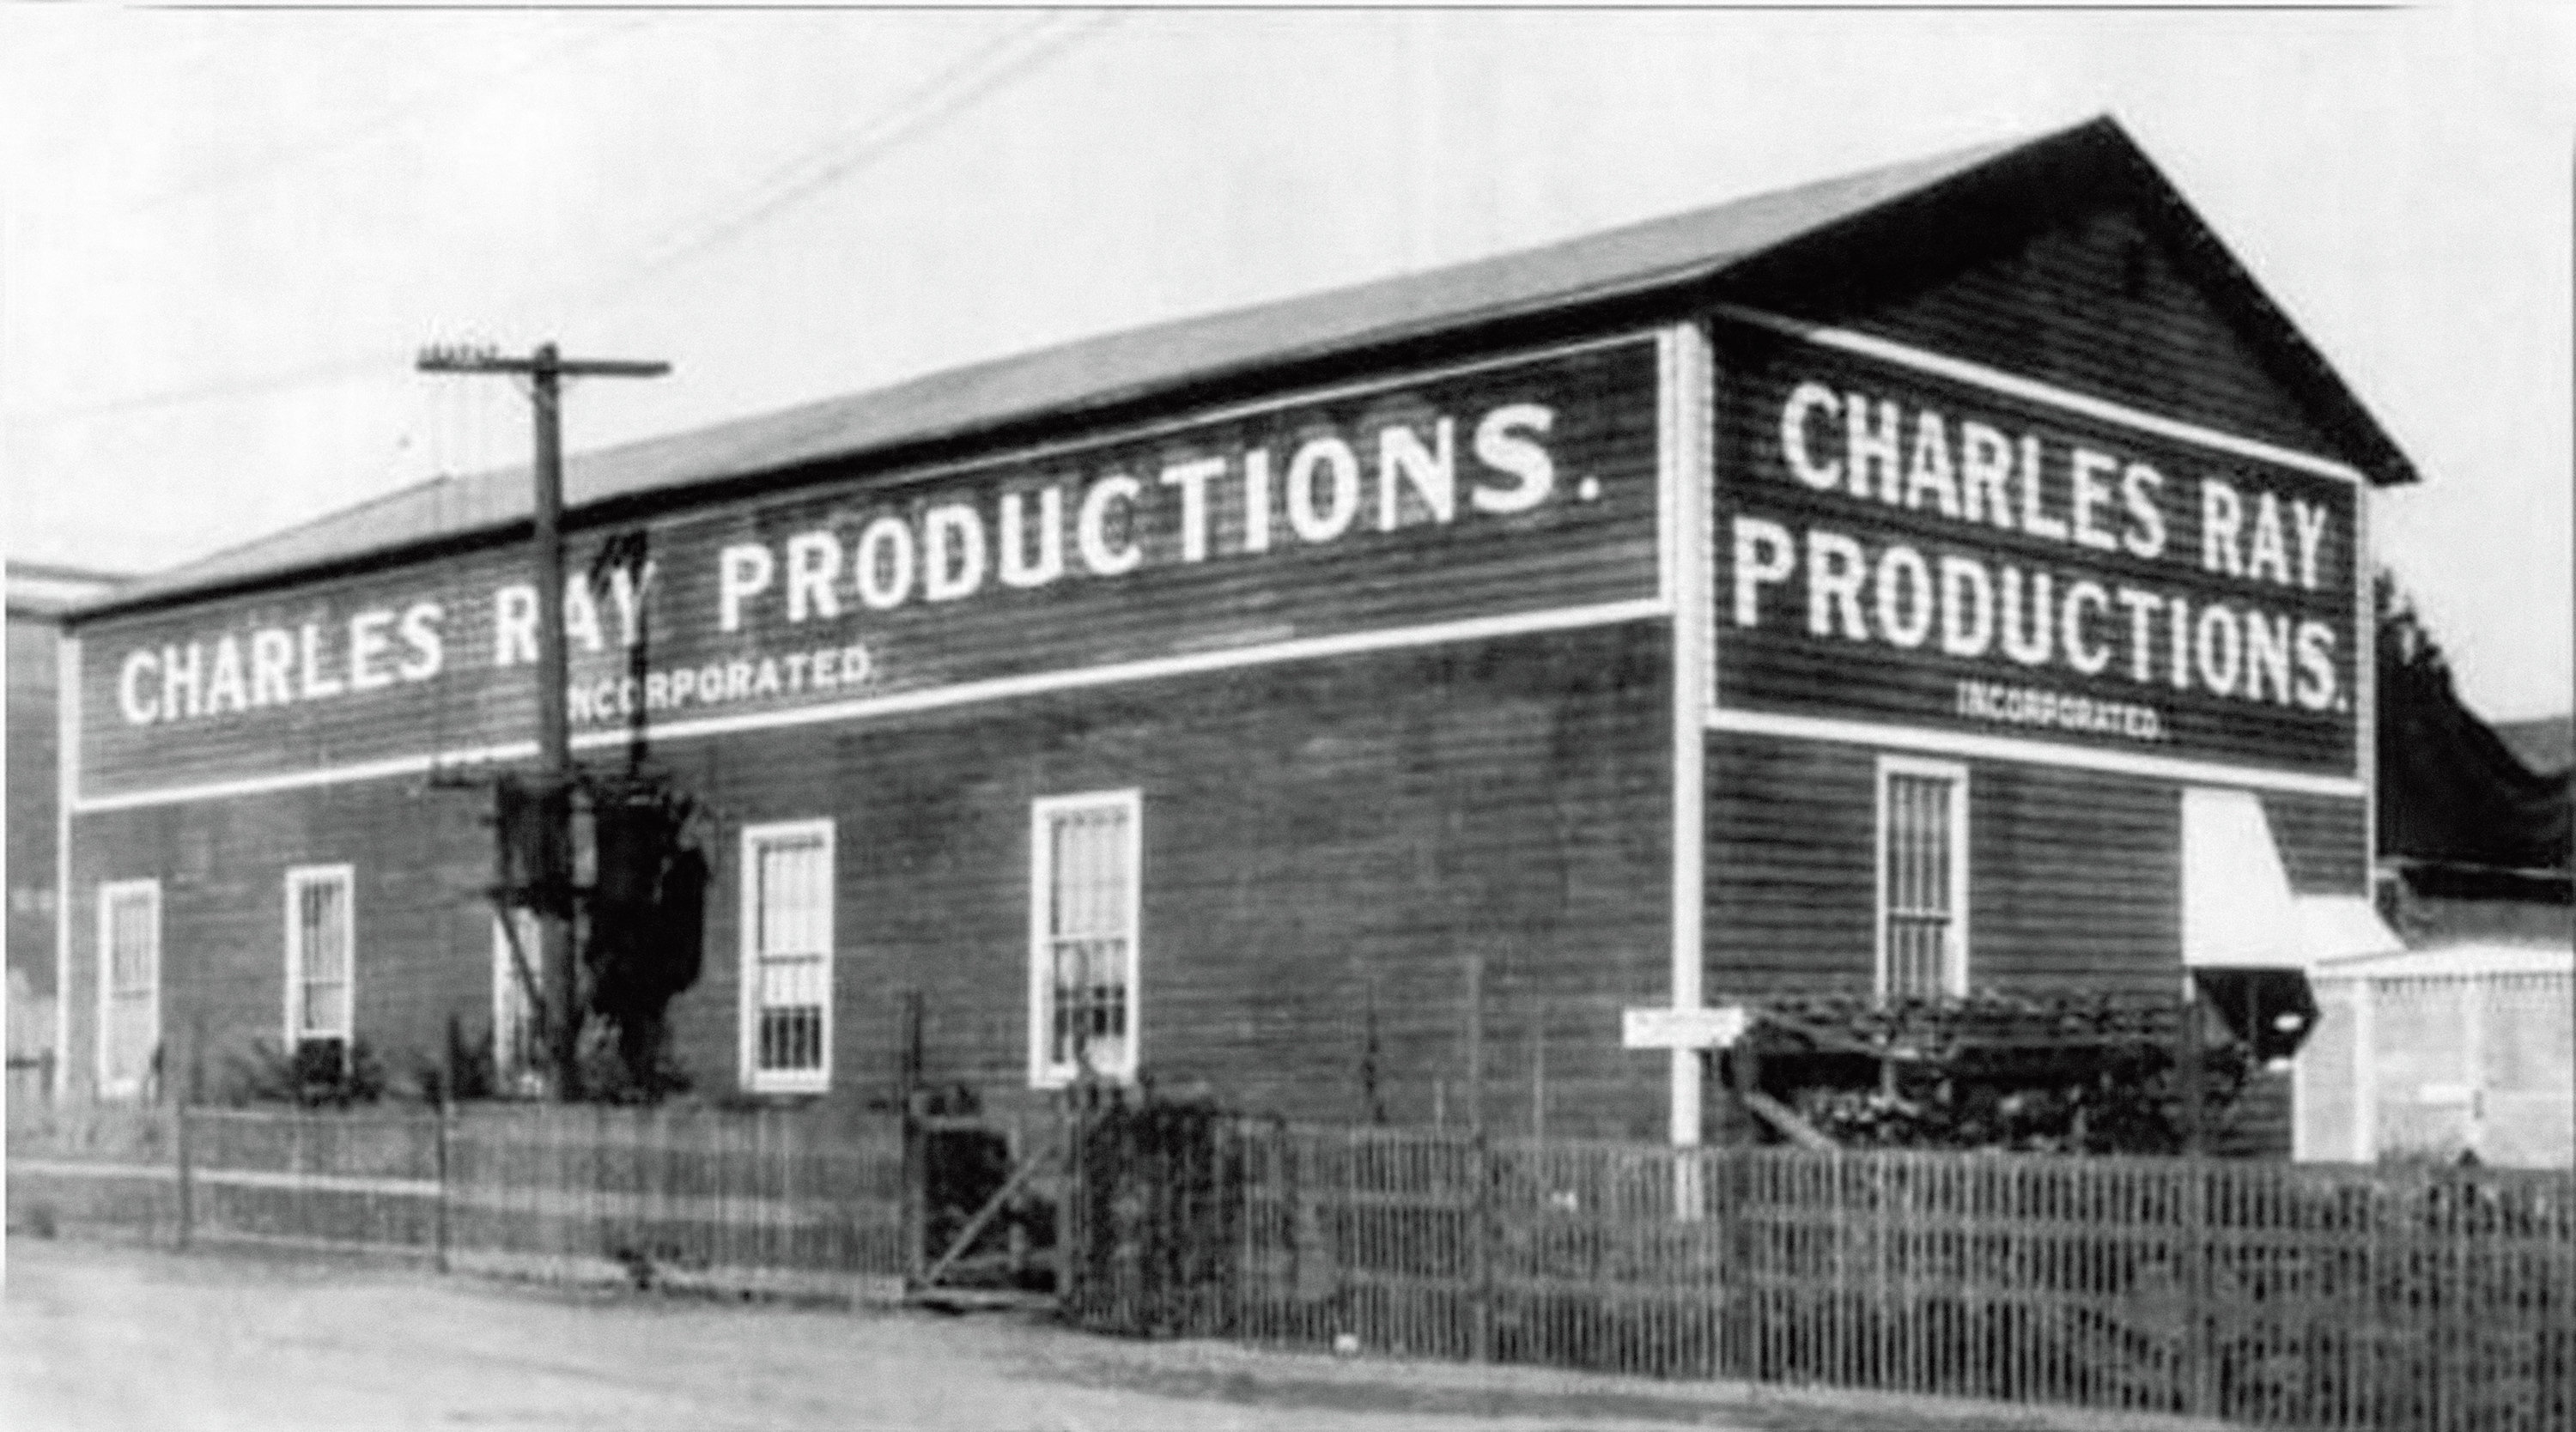 Charles Ray Productions